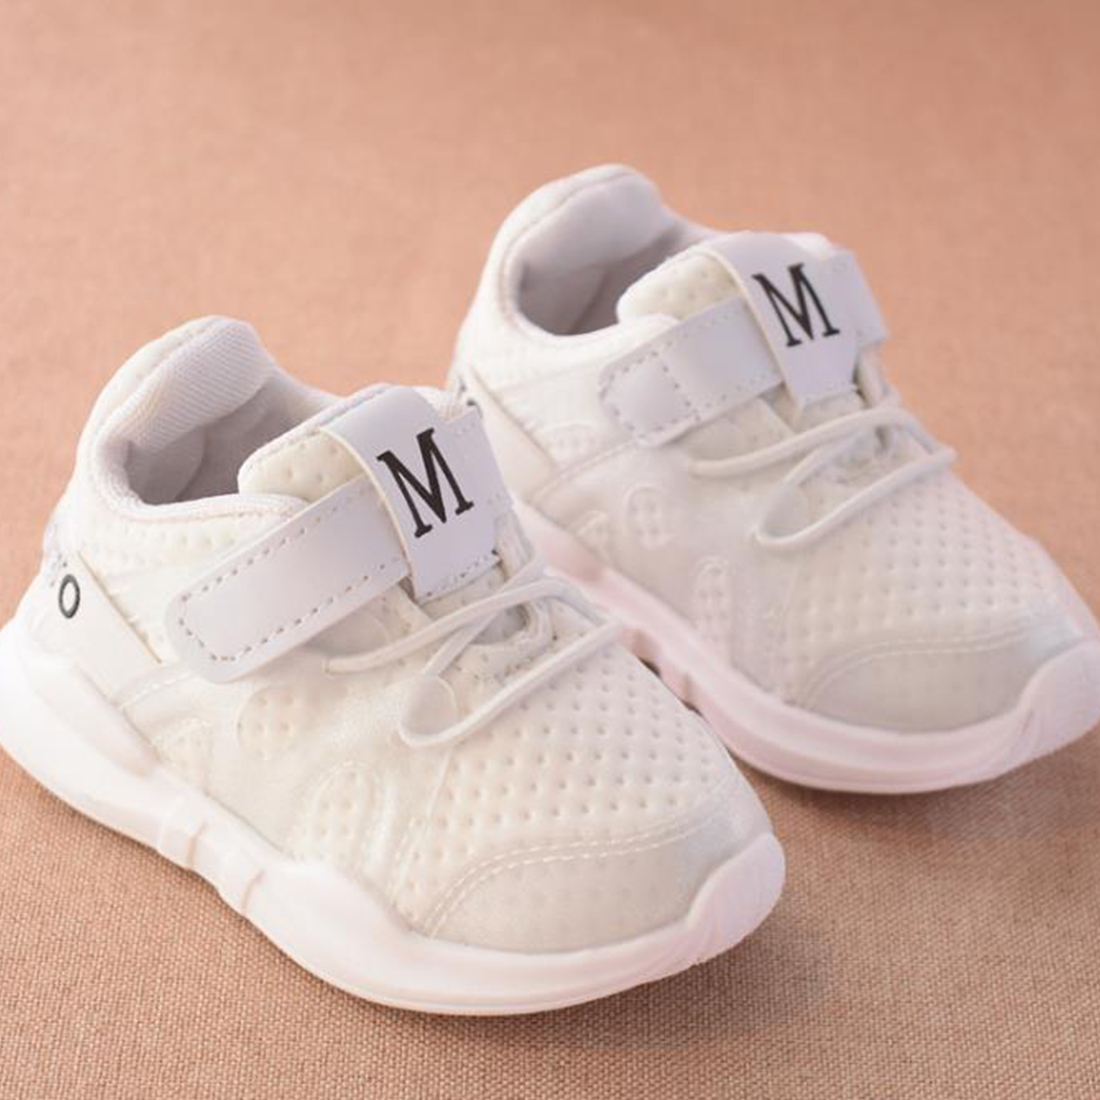 Kids Shoes 2020 Fashionable Breathable Pink Leisure Sports Running-Shoes for Girls White Sneakers Boys High Brand Shoes